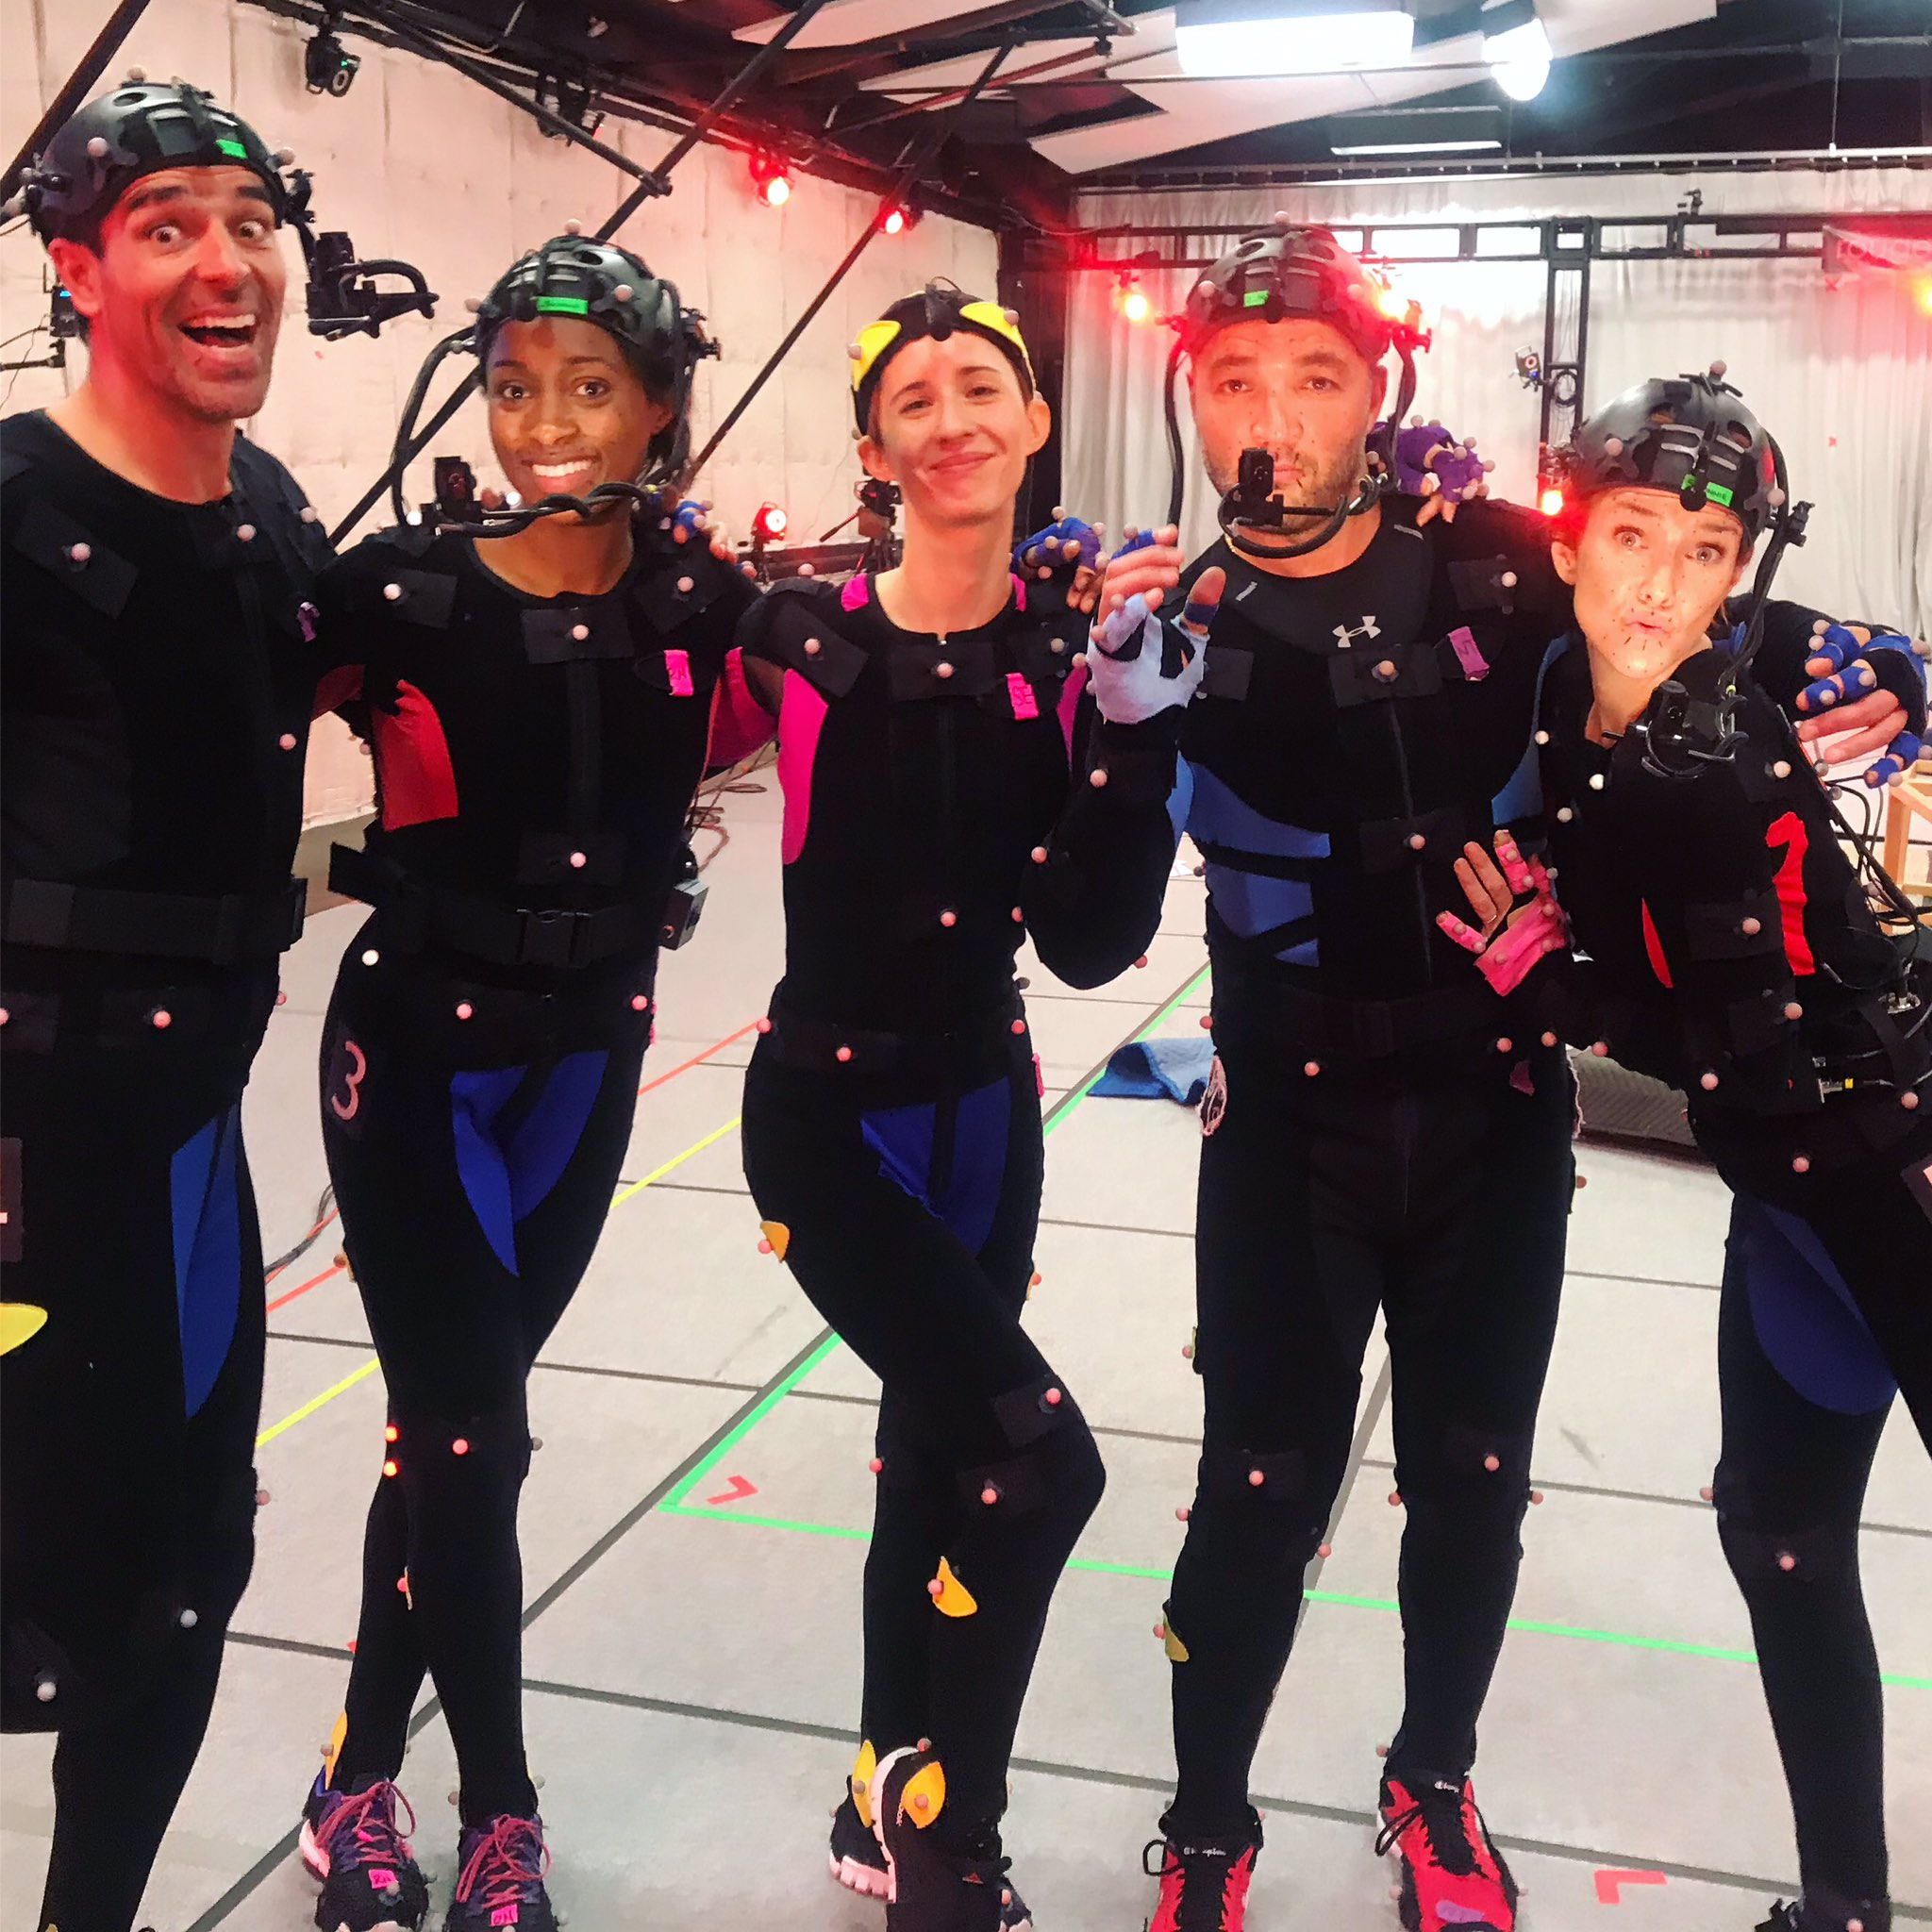 The Anthem cast in the mocap volume